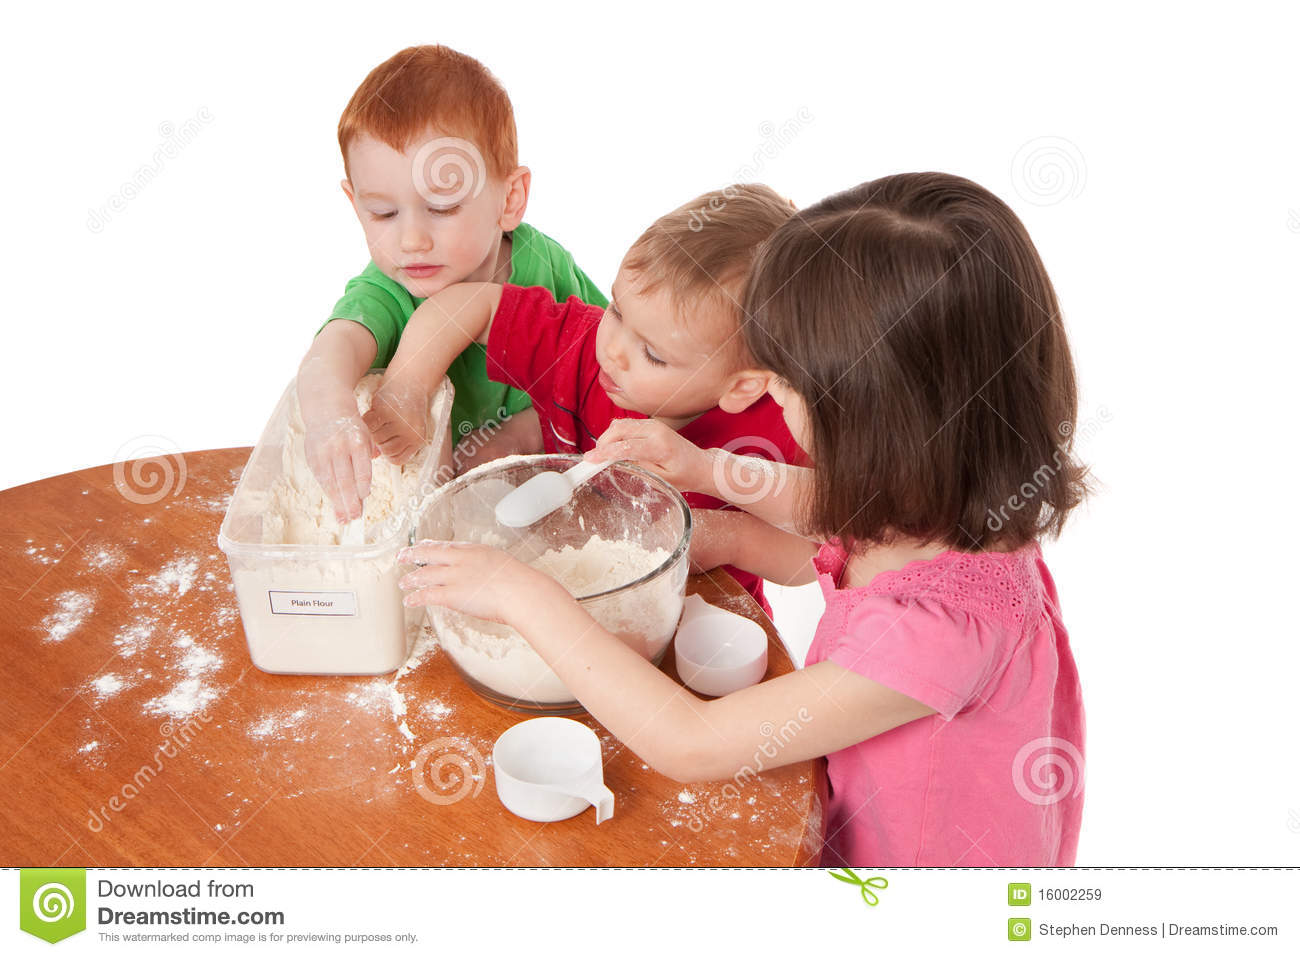 Preschooler Kids Making Mess In Kitchen Royalty Free Stock